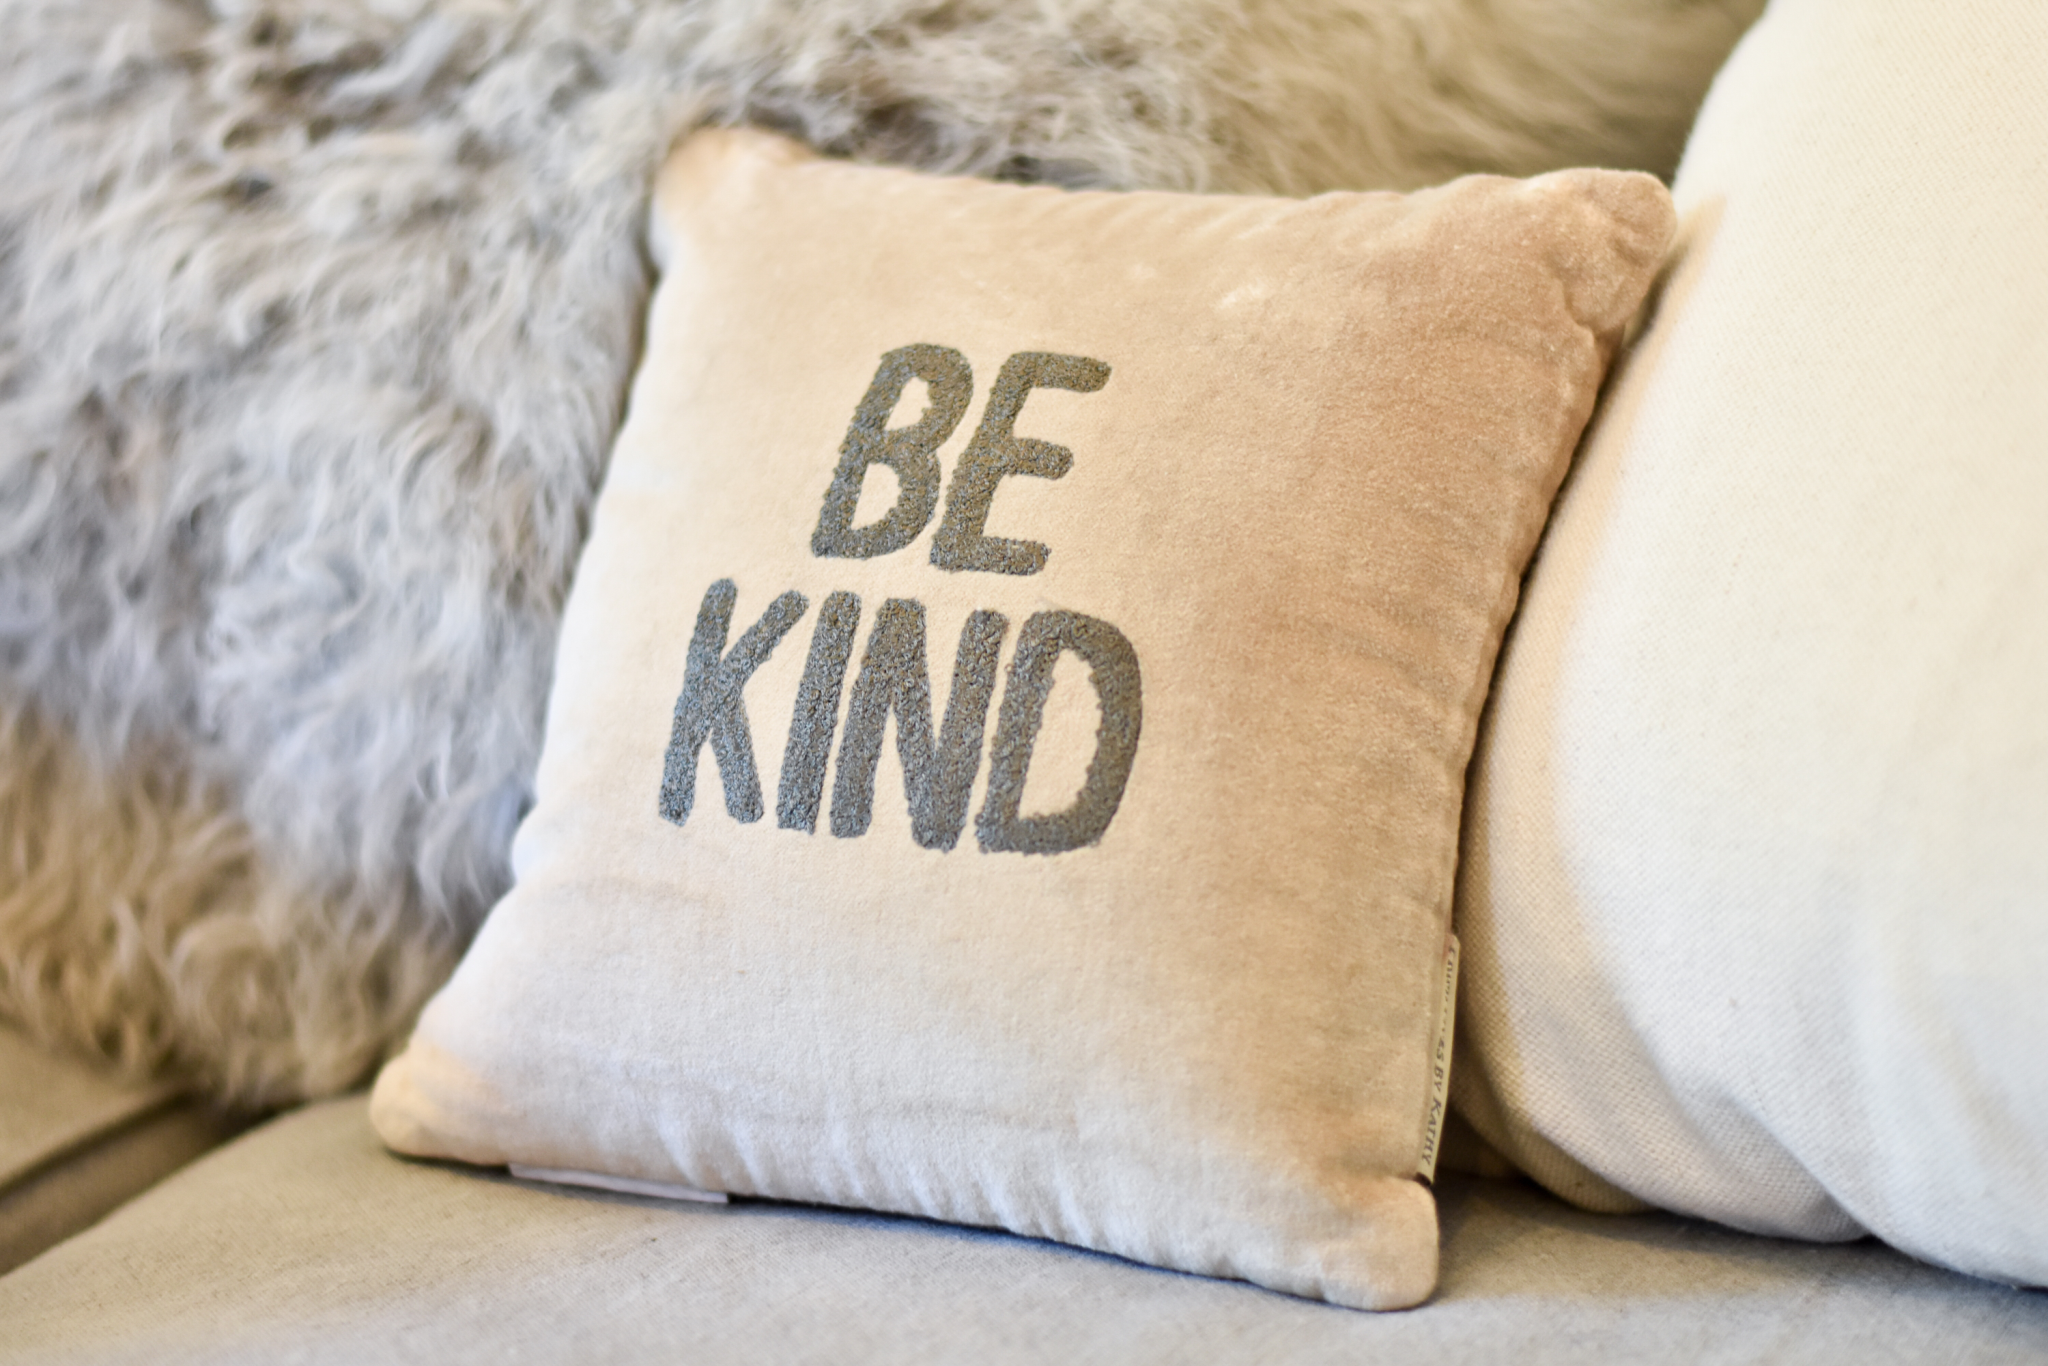 Velvet be kind pillow 36853 6M4QBZ772KNJM